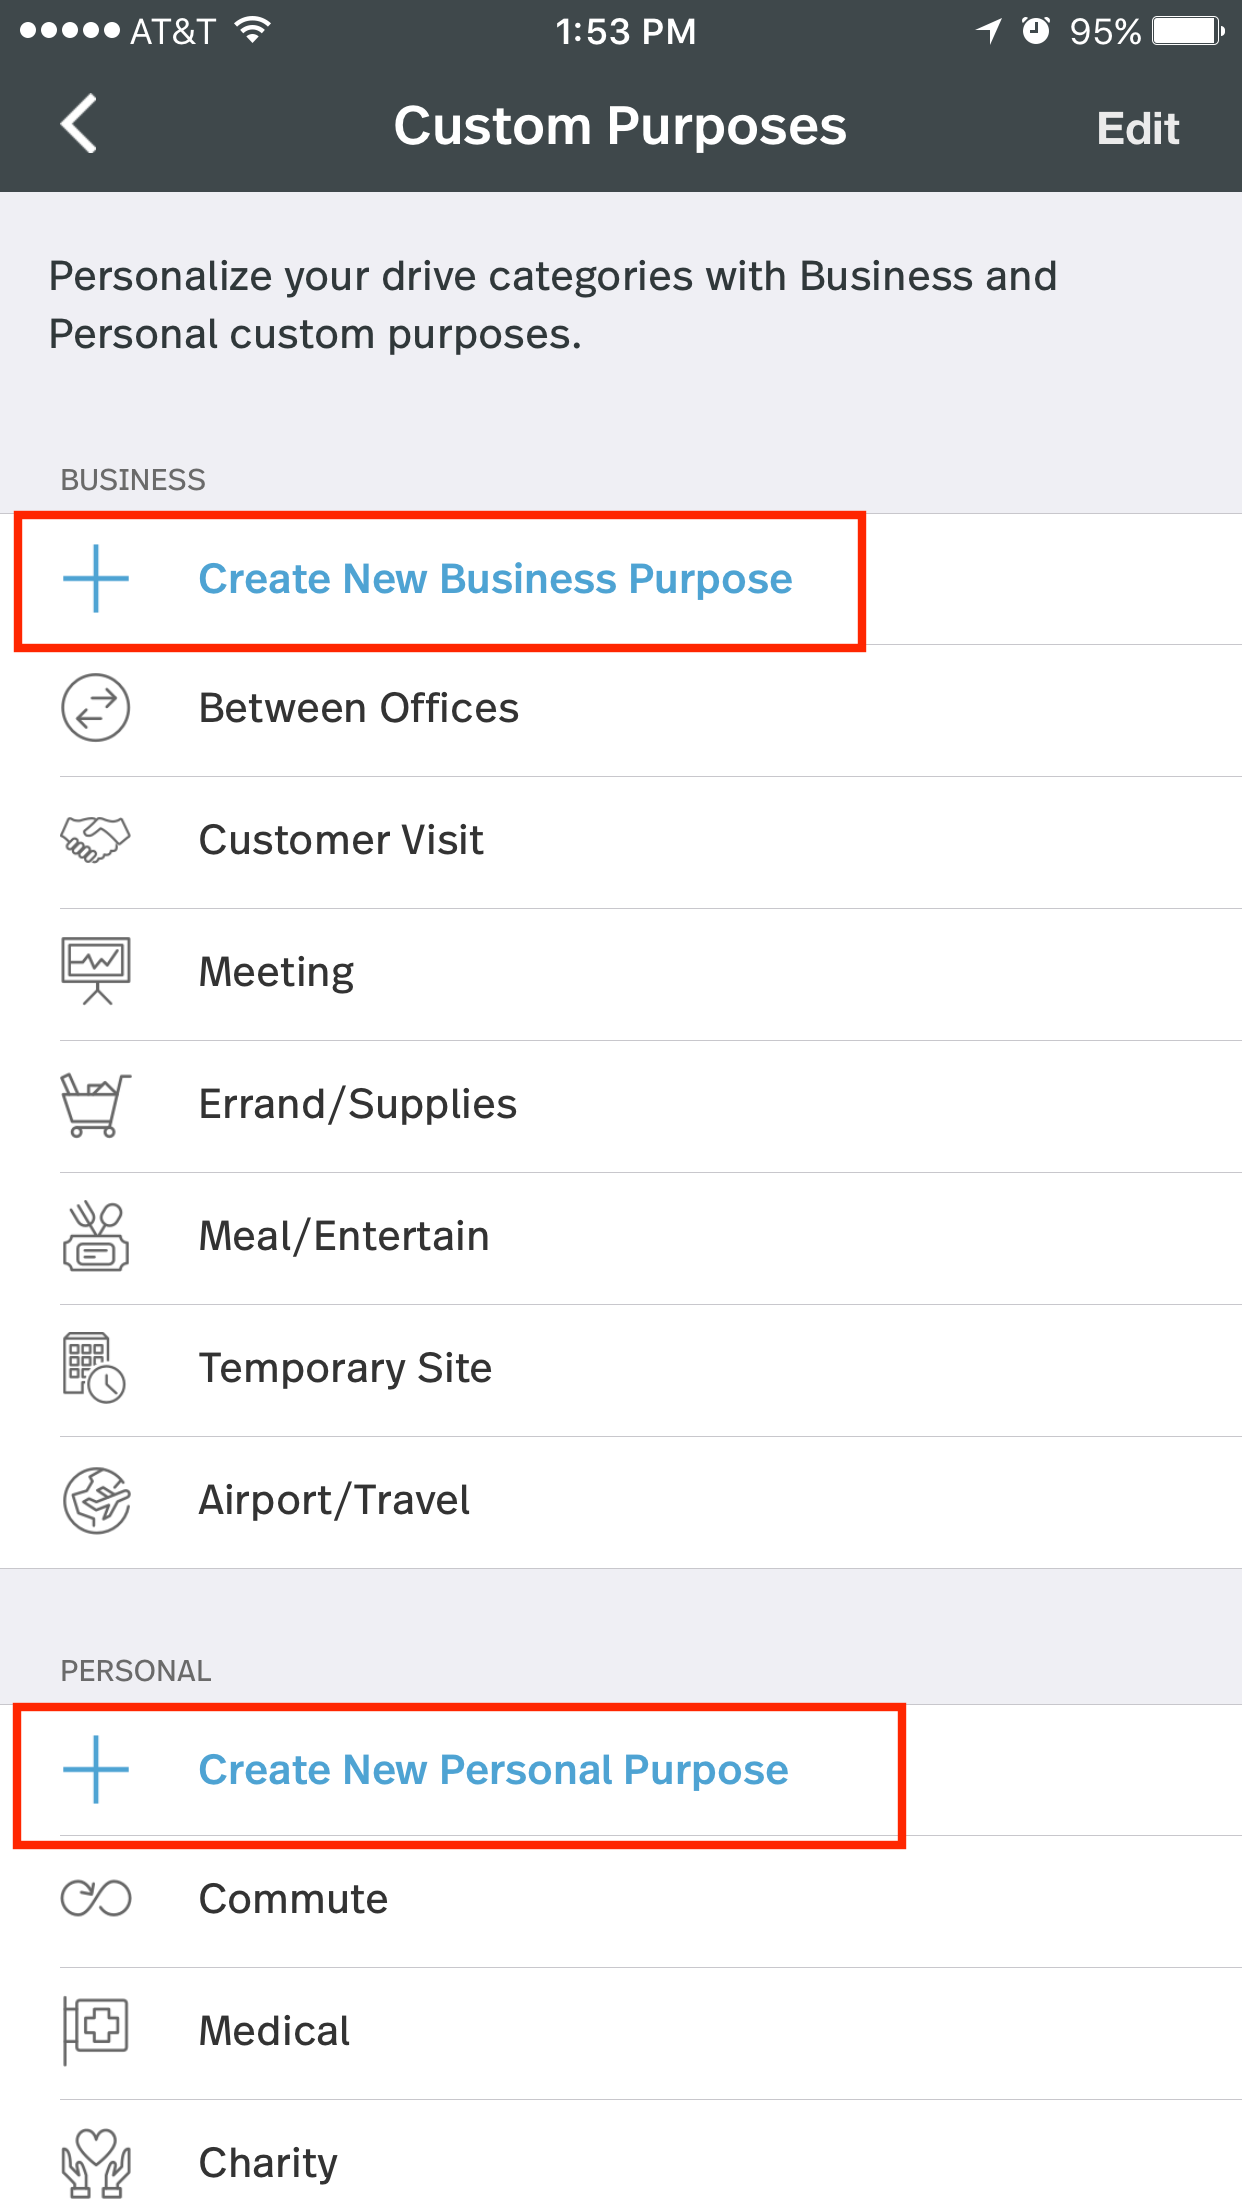 Screenshot shows the Custom Purposes screen circling Create New Business Purpose and Create New Personal Purpose